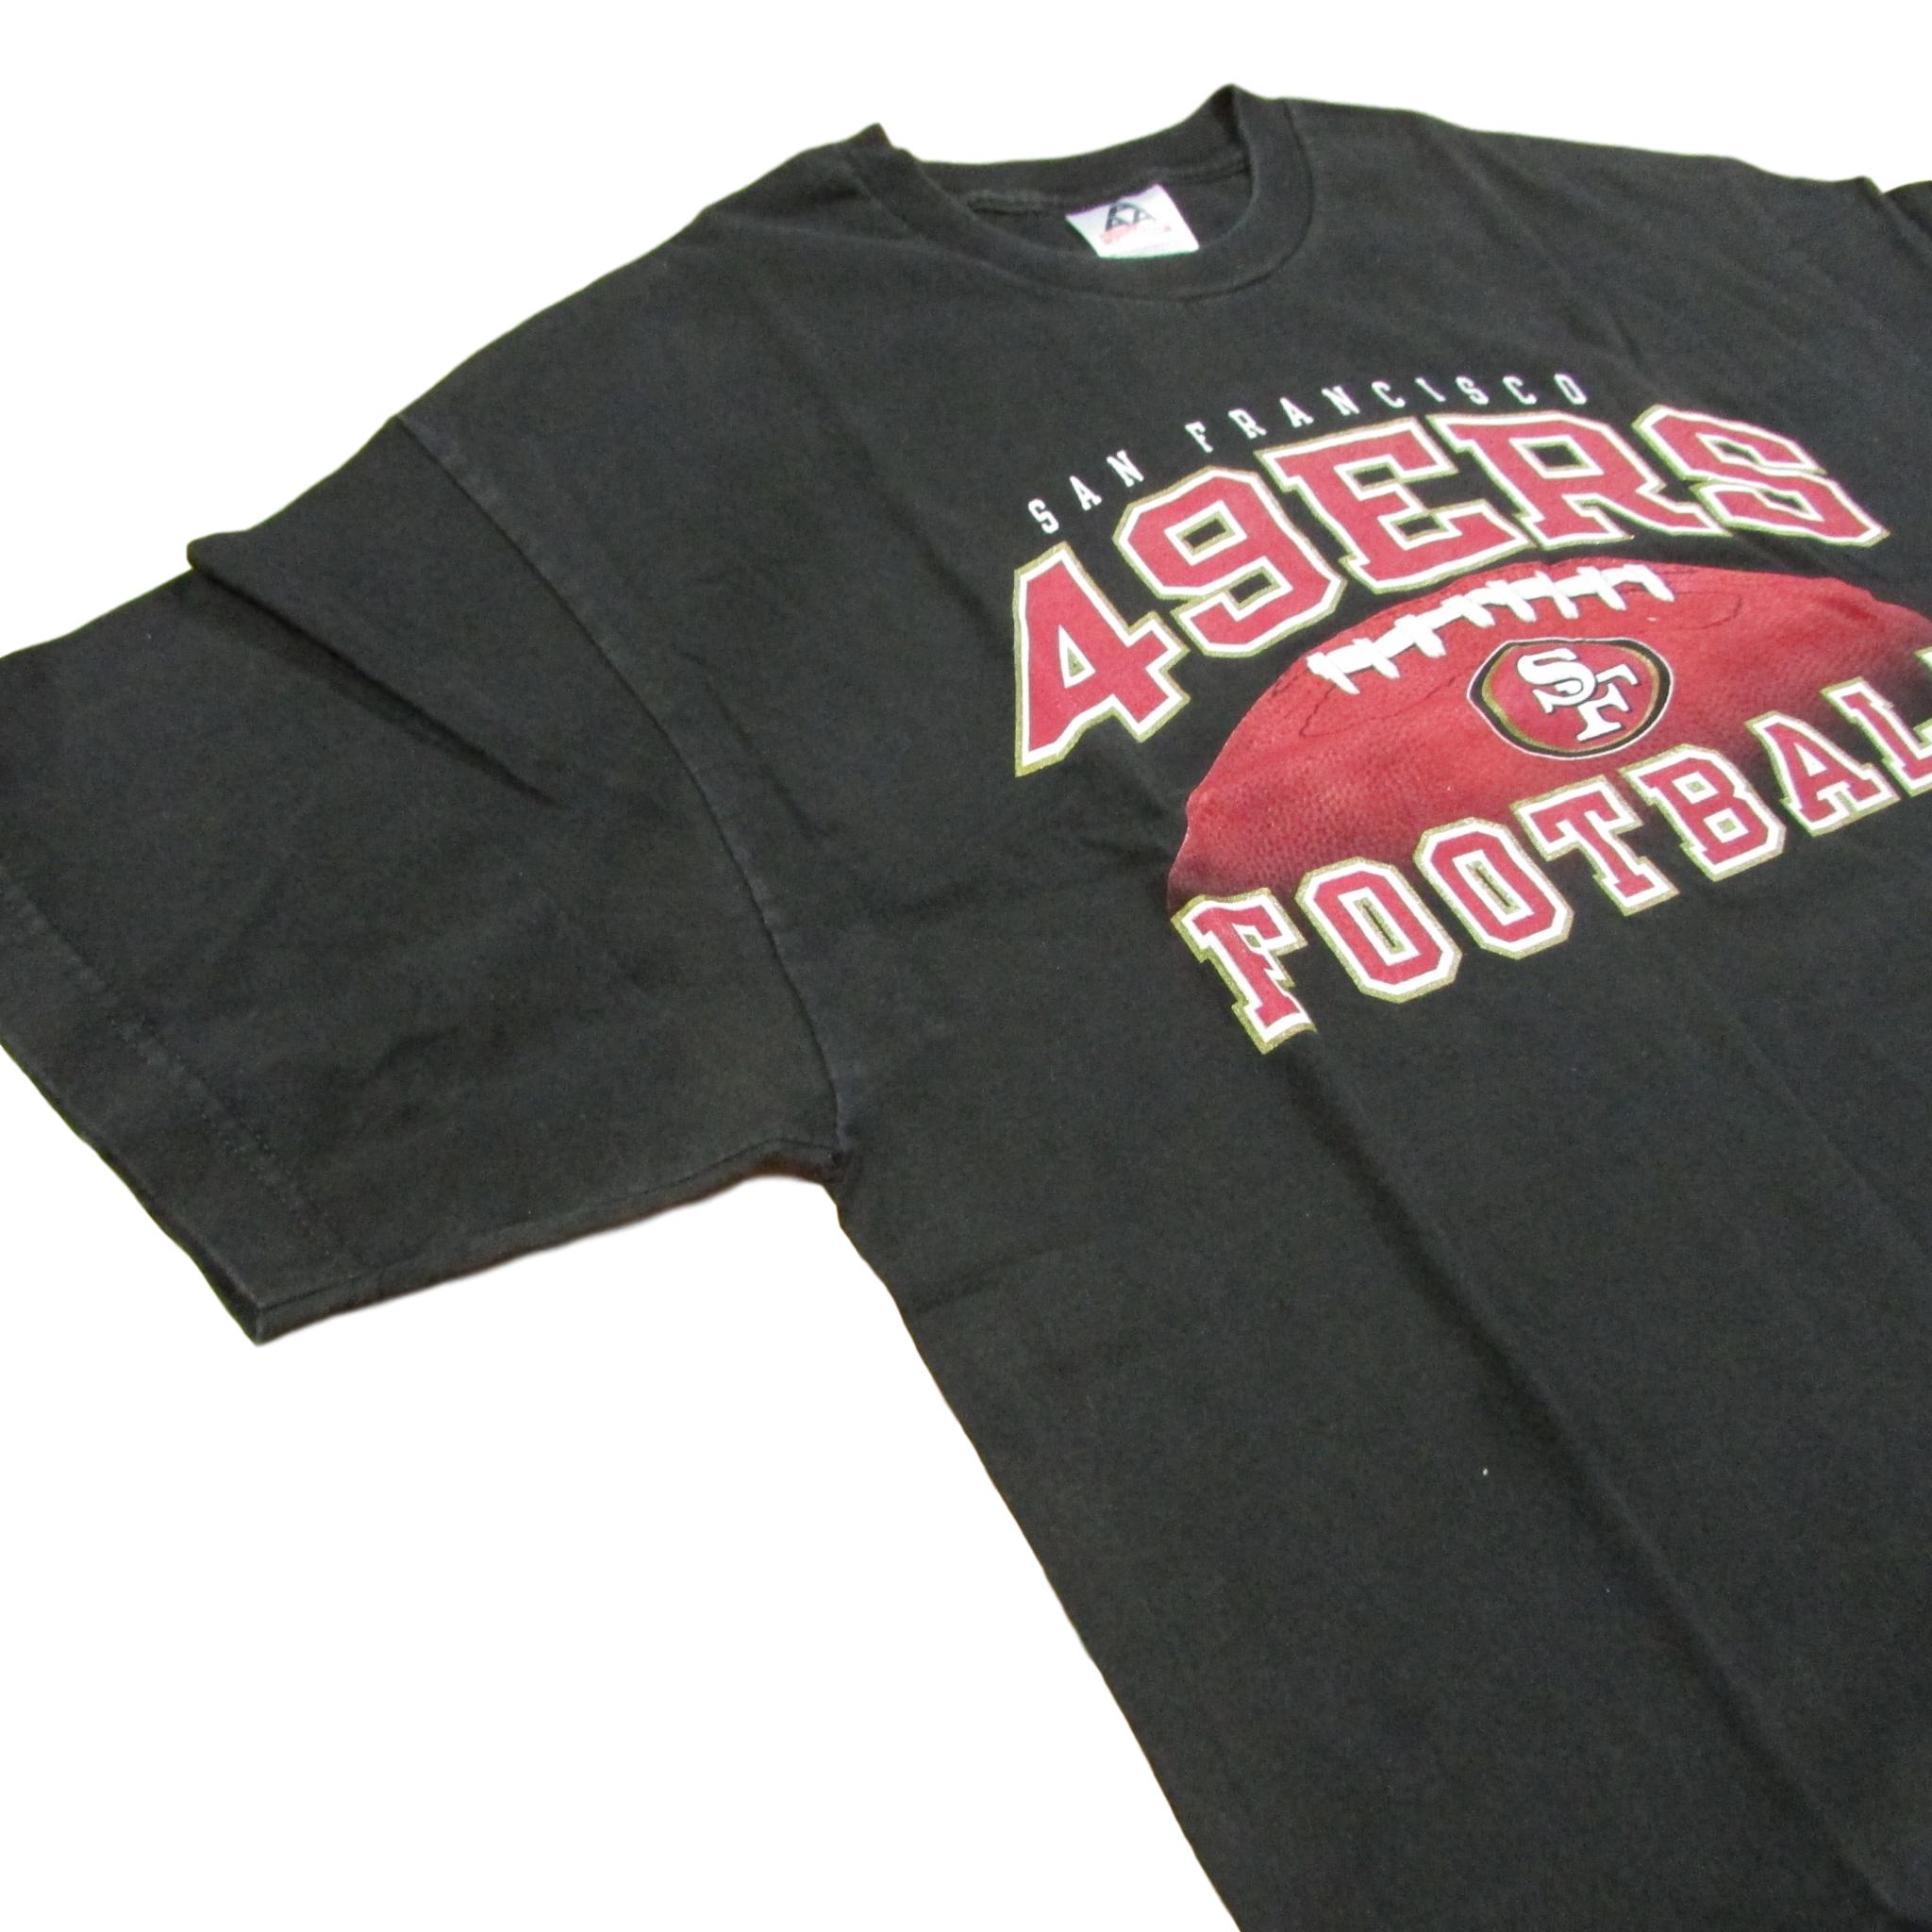 San Francisco 49ers Football T-Shirt Black & Red Sz XL